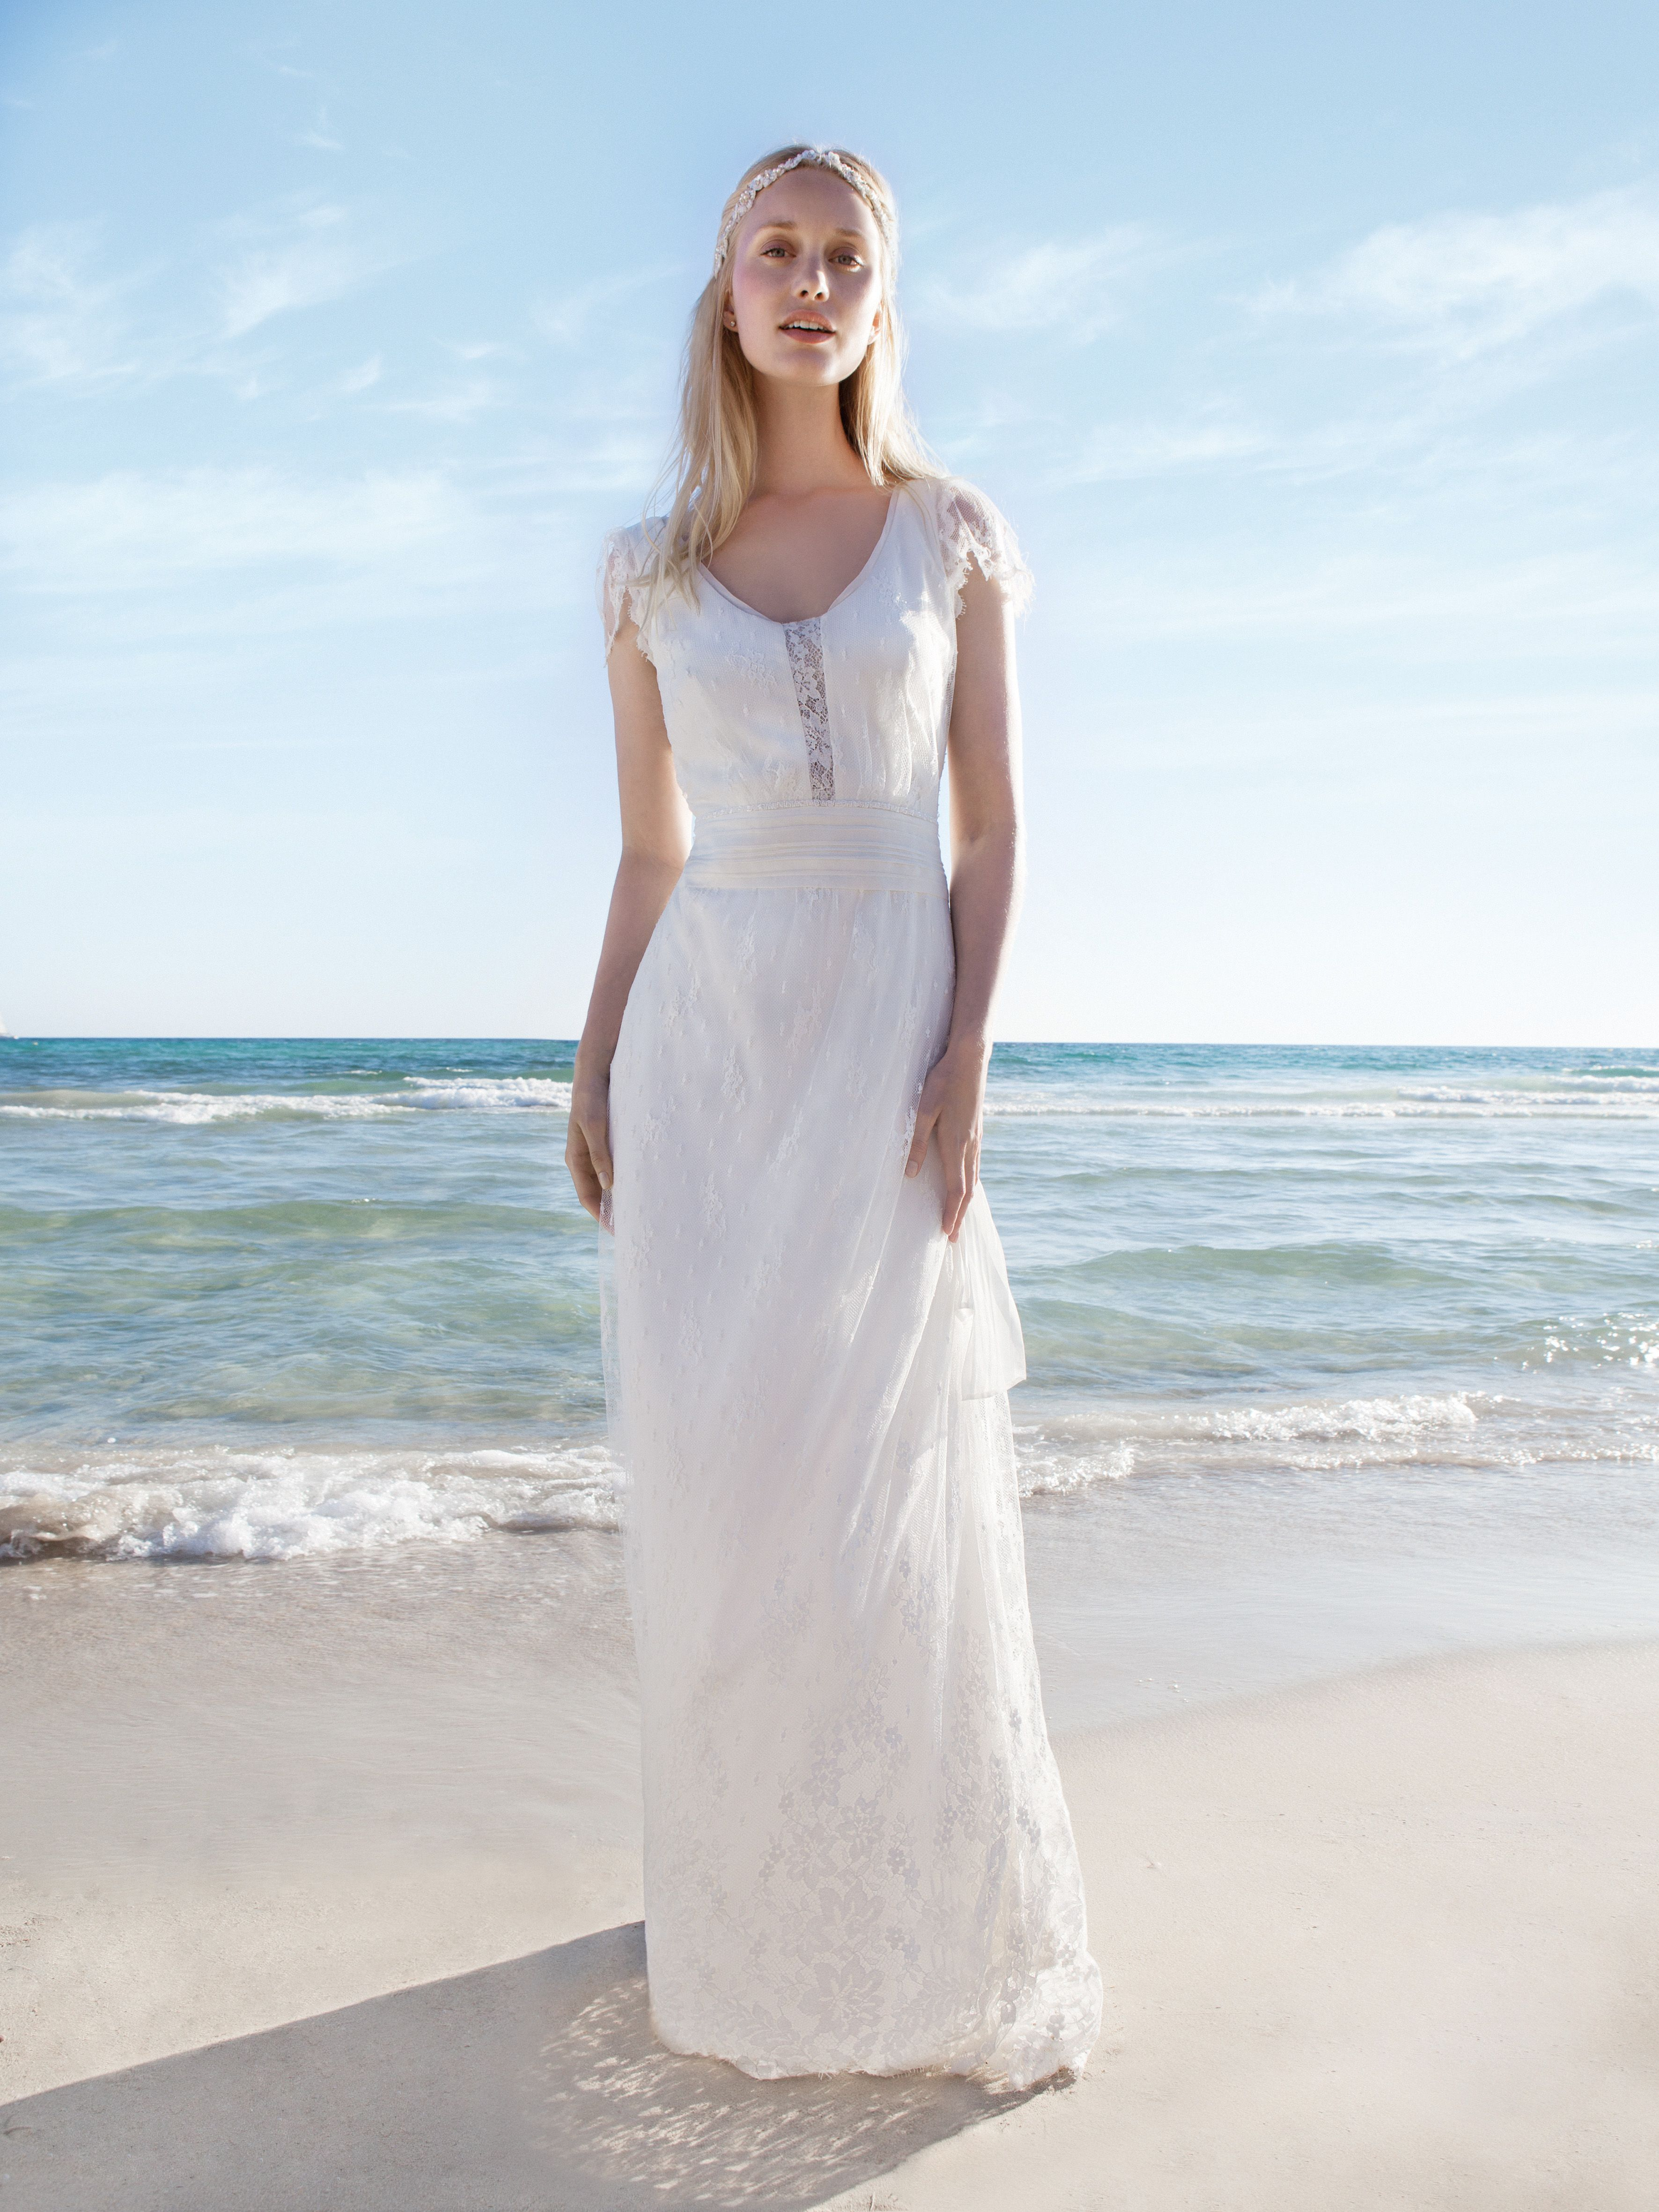 Ecume: Rembo Styling bridal gowns and wedding dresses #rembostyling ...